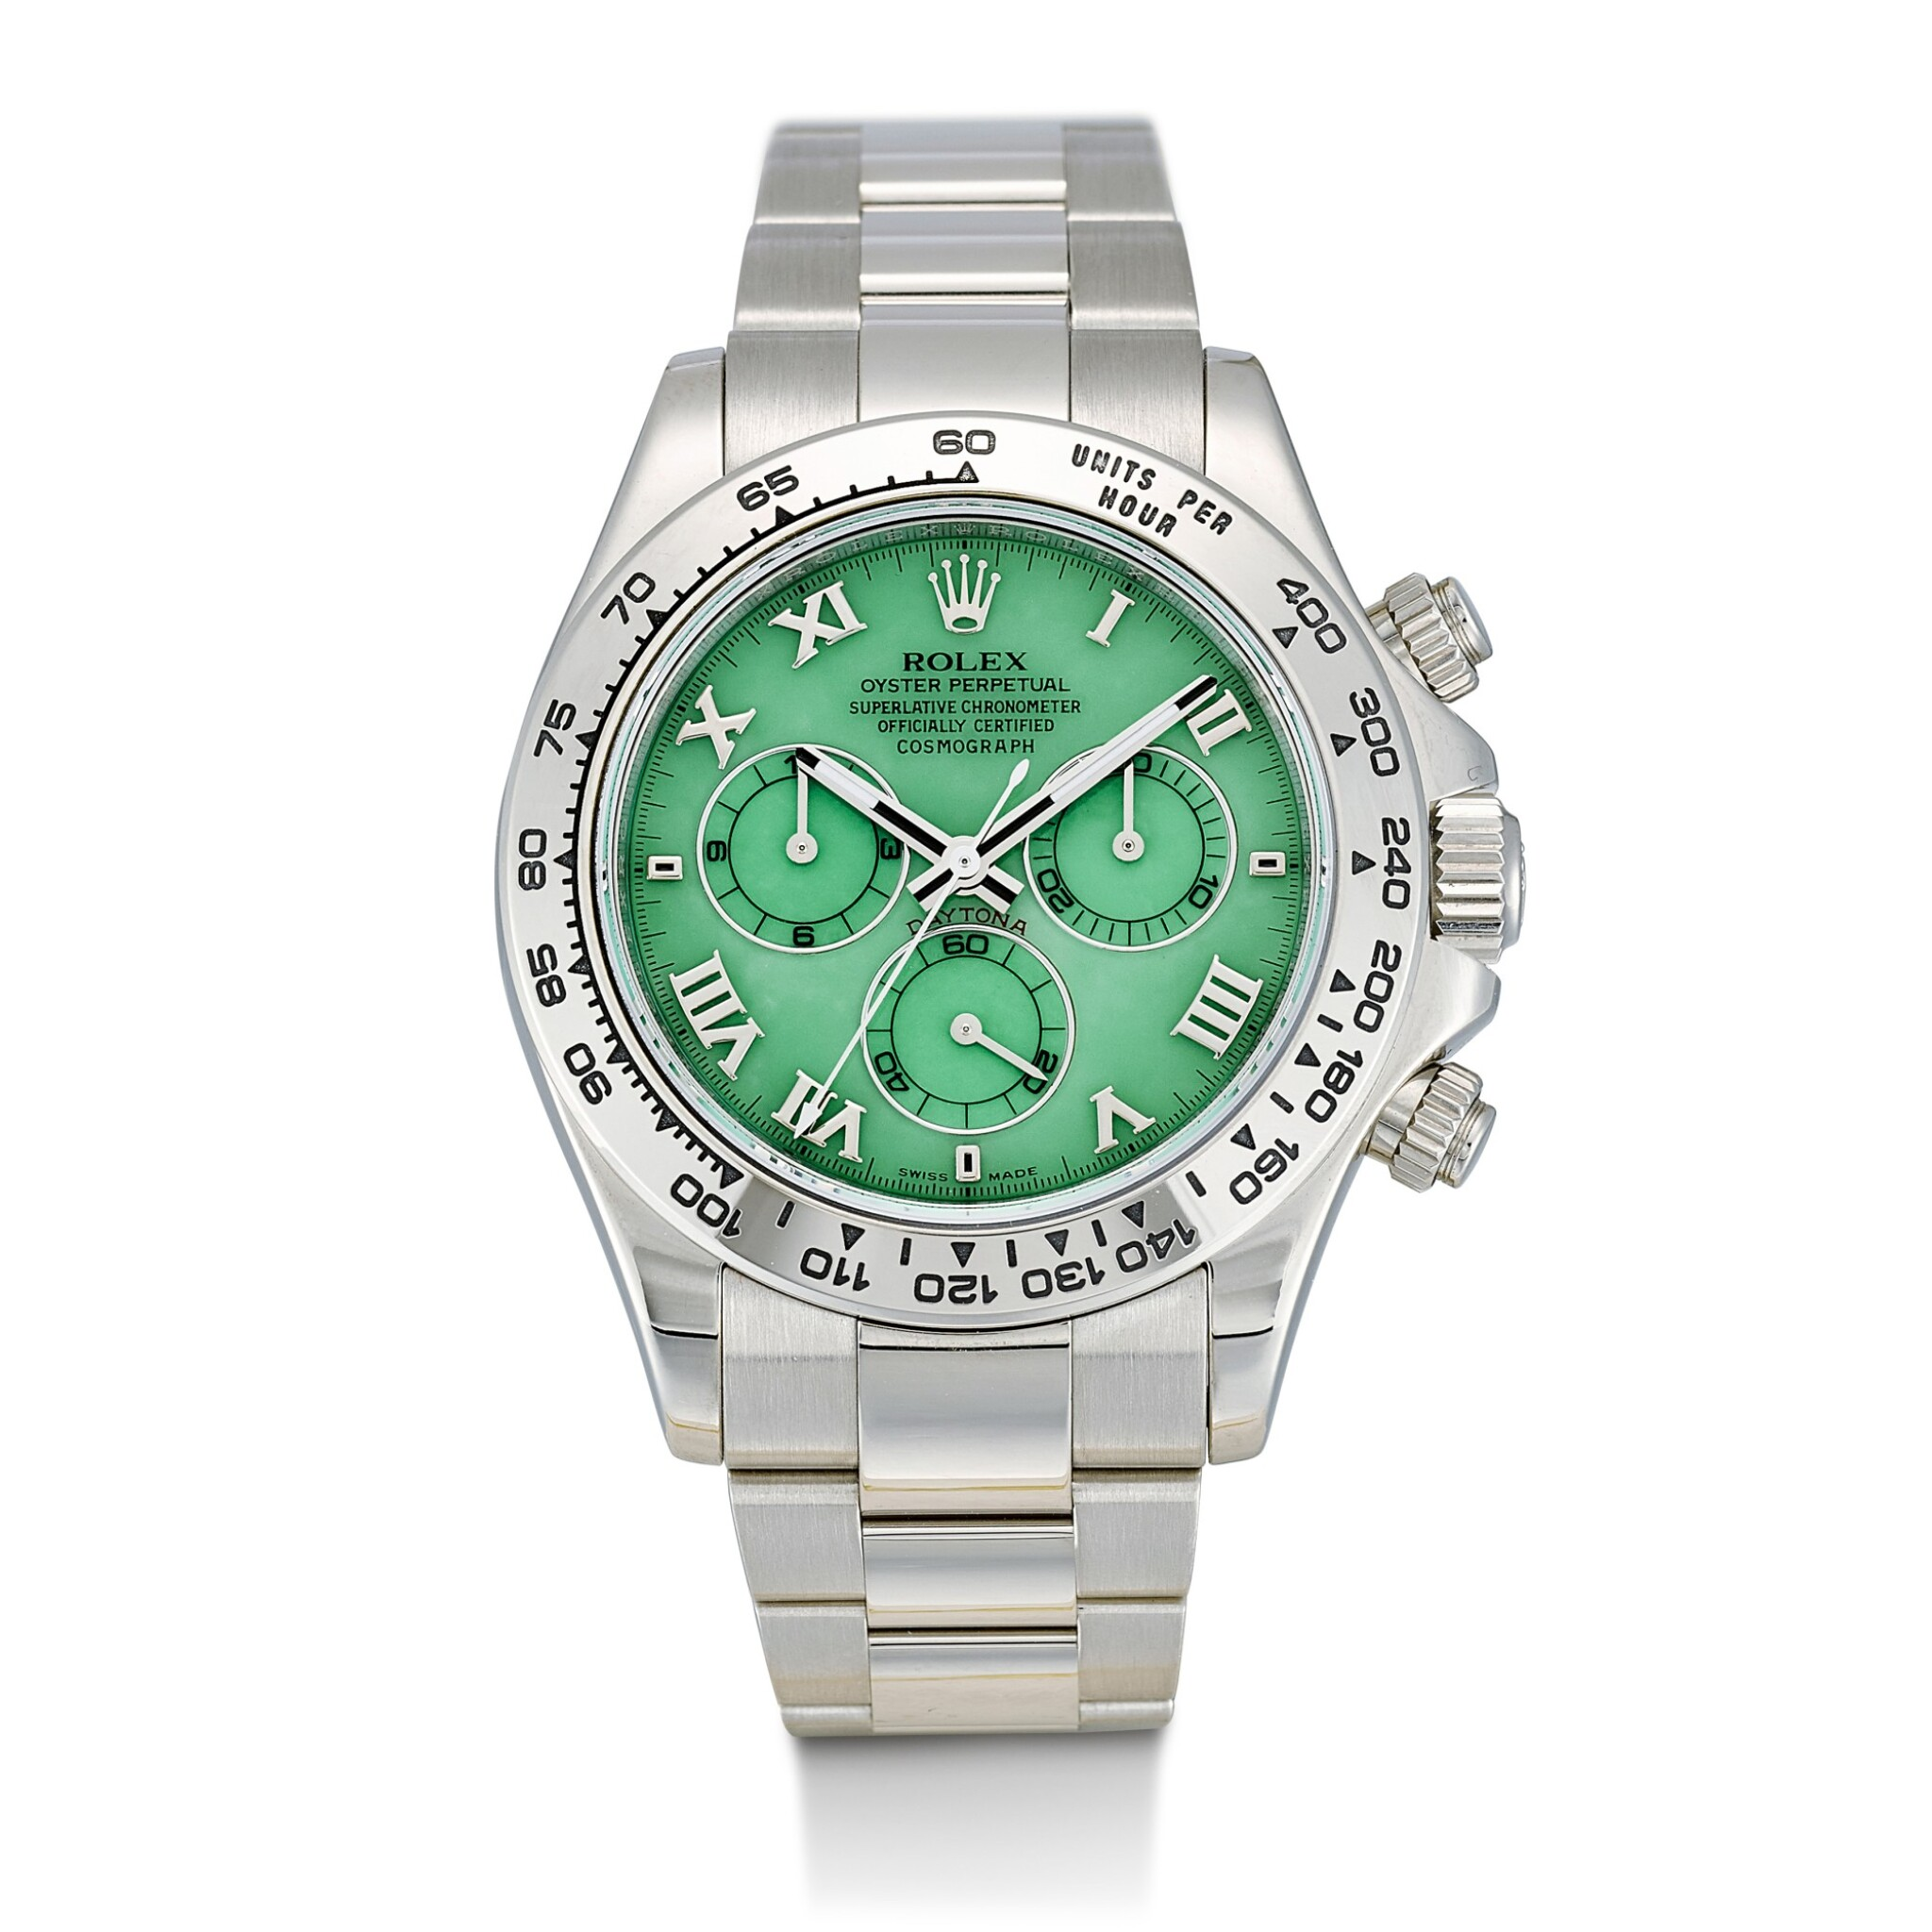 View full screen - View 1 of Lot 164. ROLEX | COSMOGRAPH DAYTONA, REFERENCE 116509H, A WHITE GOLD CHRONOGRAPH WRISTWATCH WITH GREEN CHRYSOPRASE DIAL AND BRACELET, CIRCA 2015.